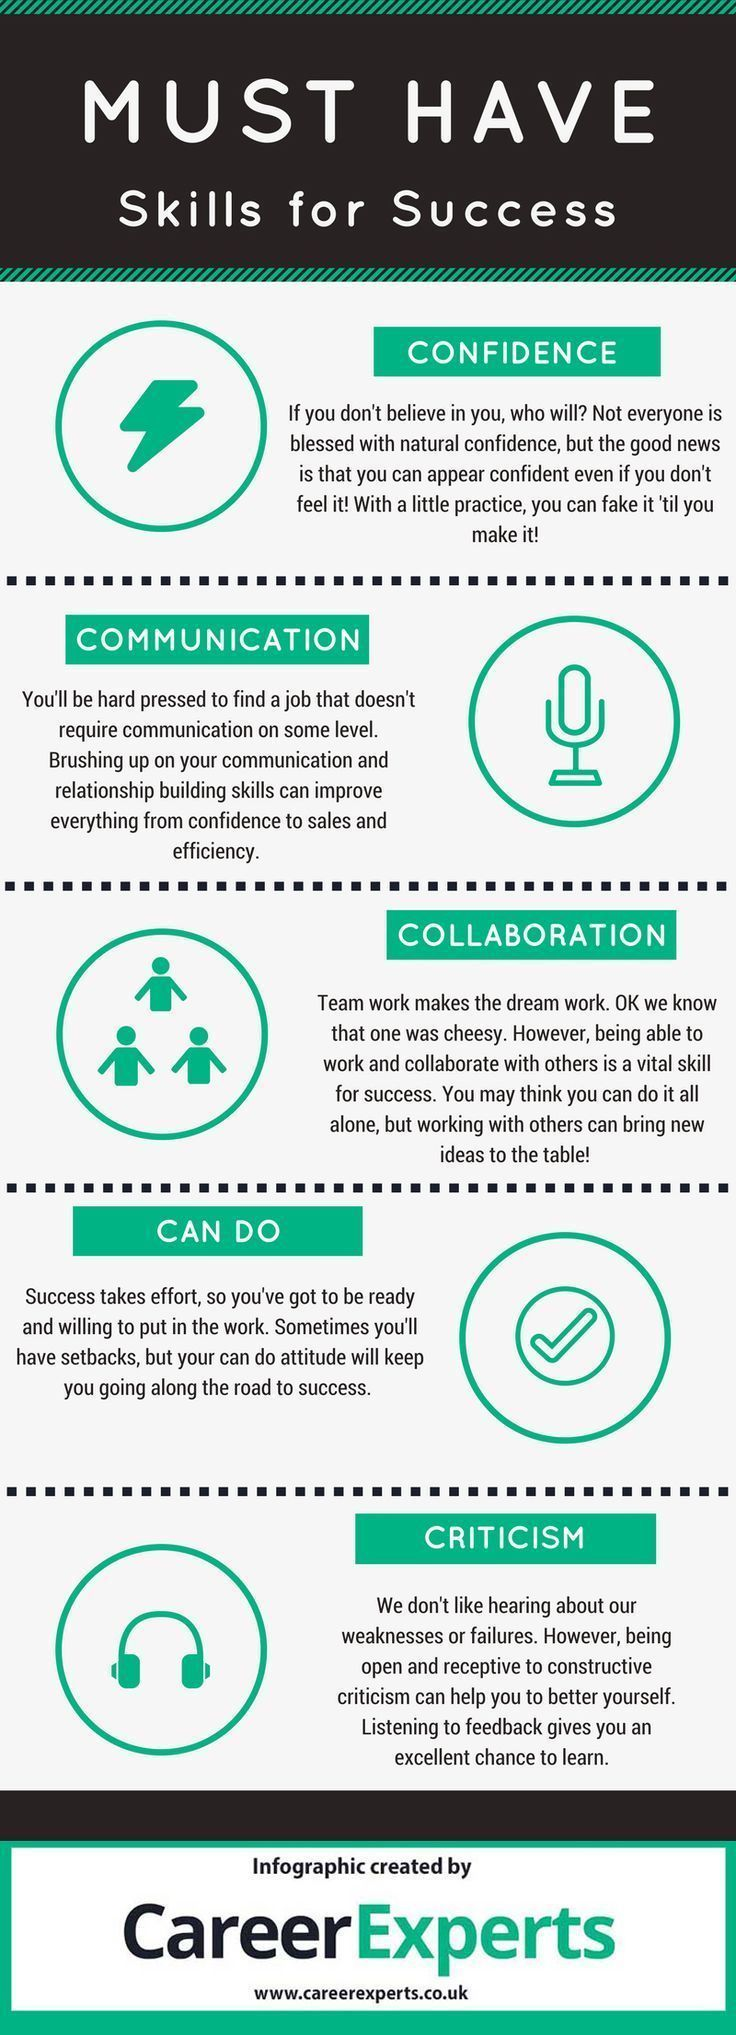 What are the most important skills to be successful in